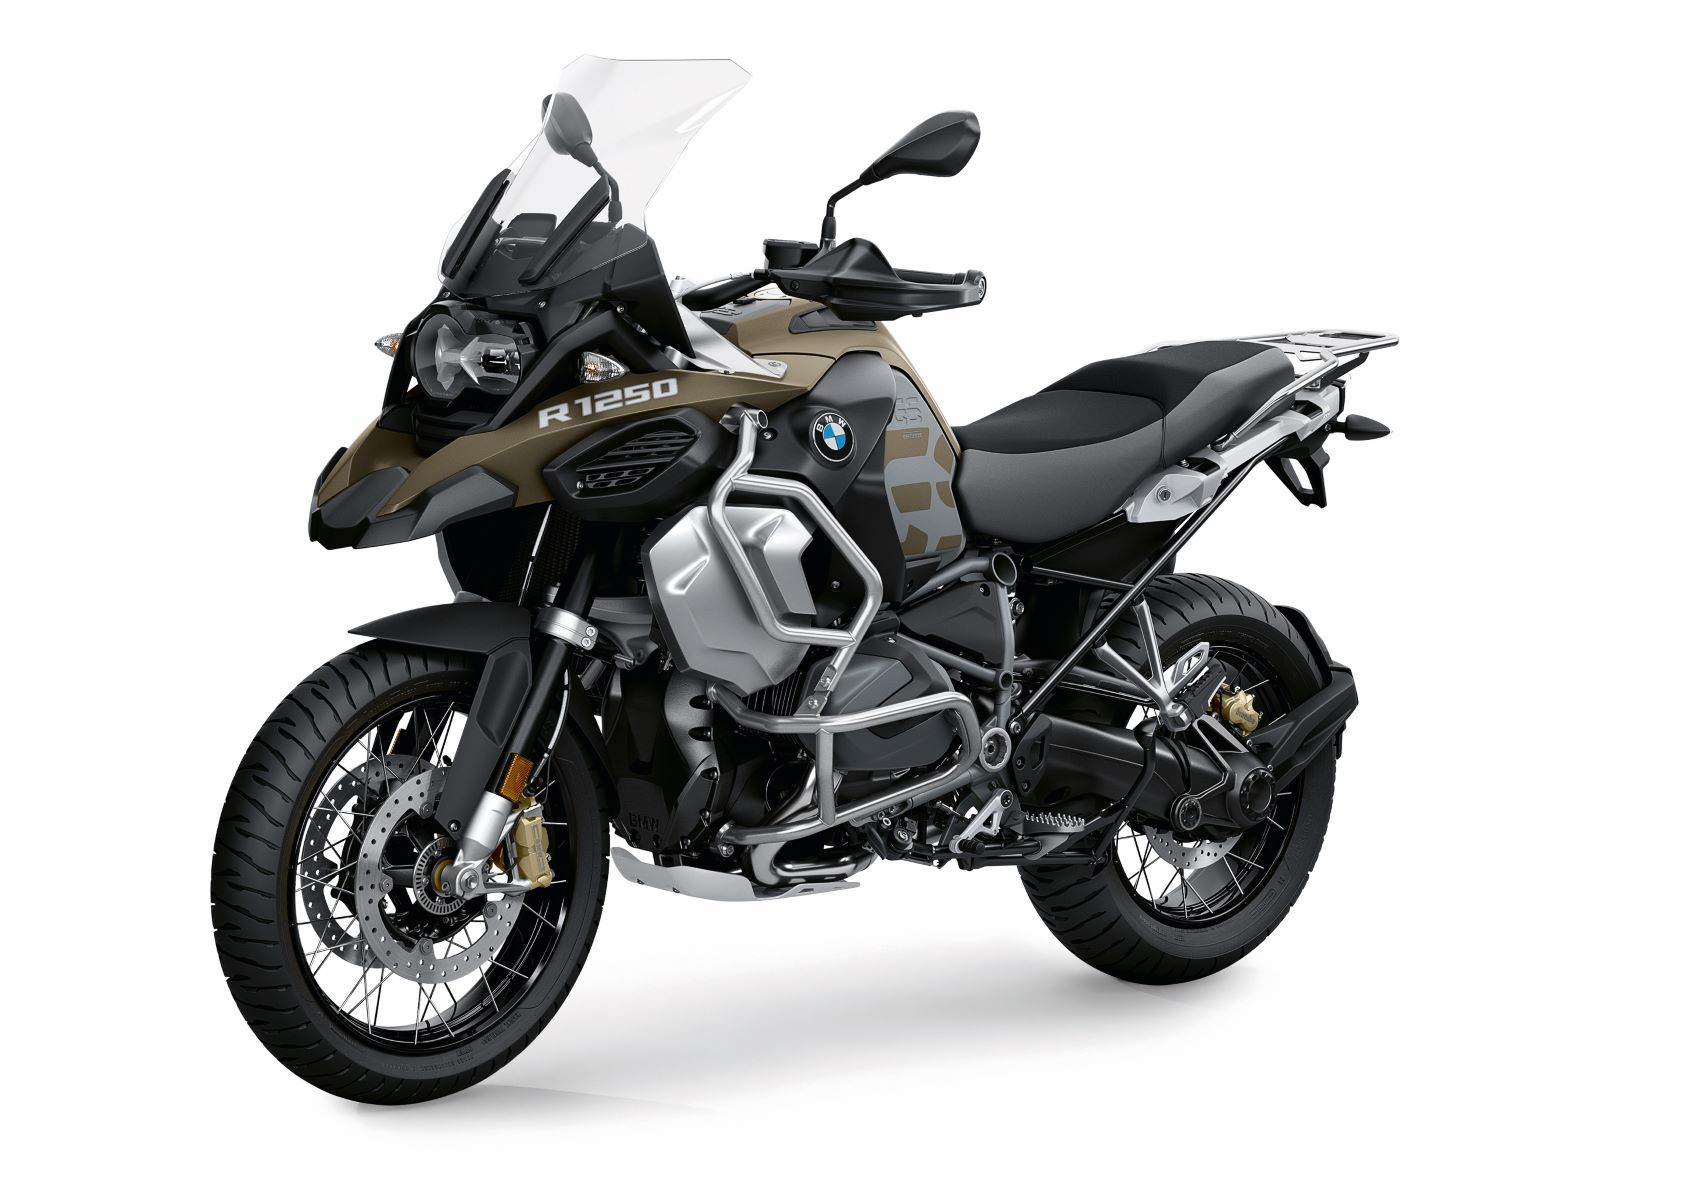 R 1250 GS Adventure Premium Exclusive